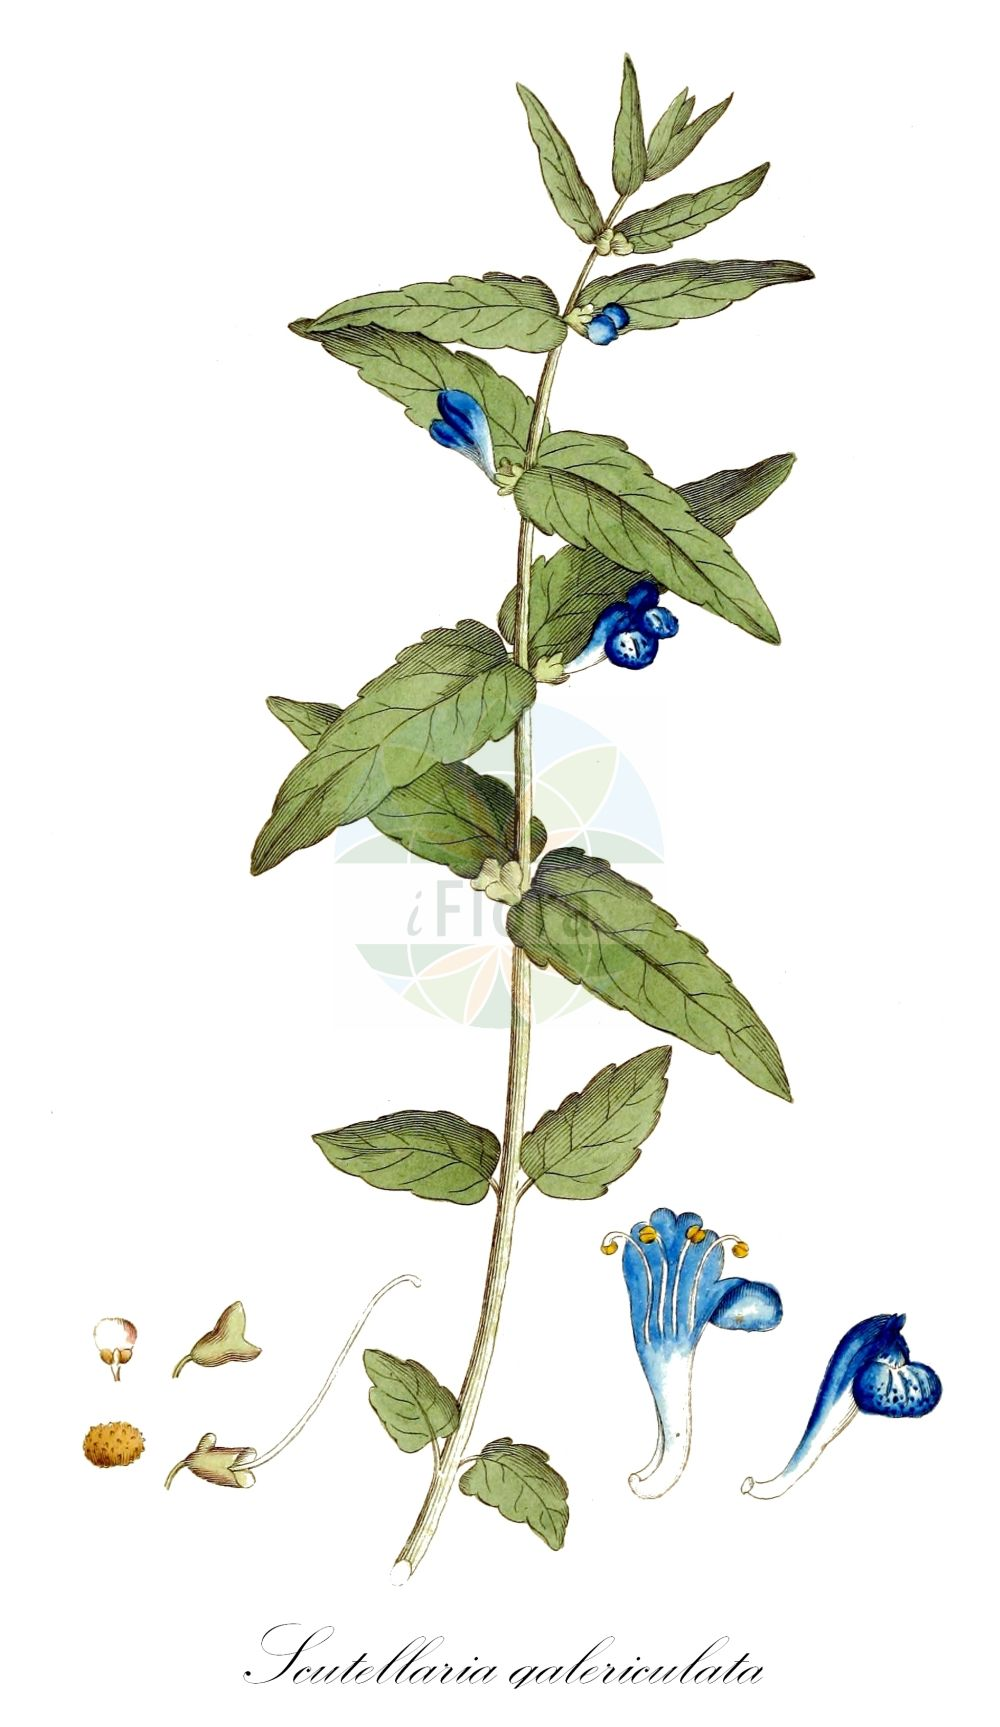 Historische Abbildung von Scutellaria galericulata (Sumpf-Helmkraut - Skullcap). Das Bild zeigt Blatt, Bluete, Frucht und Same. ---- Historical Drawing of Scutellaria galericulata (Sumpf-Helmkraut - Skullcap).The image is showing leaf, flower, fruit and seed.(Scutellaria galericulata,Sumpf-Helmkraut,Skullcap,Cassida galericulata,Cassida major,Scutellaria adamsii,Scutellaria epilobiifolia,Scutellaria pauciflora,Blue Common Marsh ,Scutellaria,Helmkraut,Skullcap,Lamiaceae,Lippenbluetengewaechse;Lippenbluetler,Nettle family,Blatt,Bluete,Frucht,Same,leaf,flower,fruit,seed,Palmstruch (1807-1843))